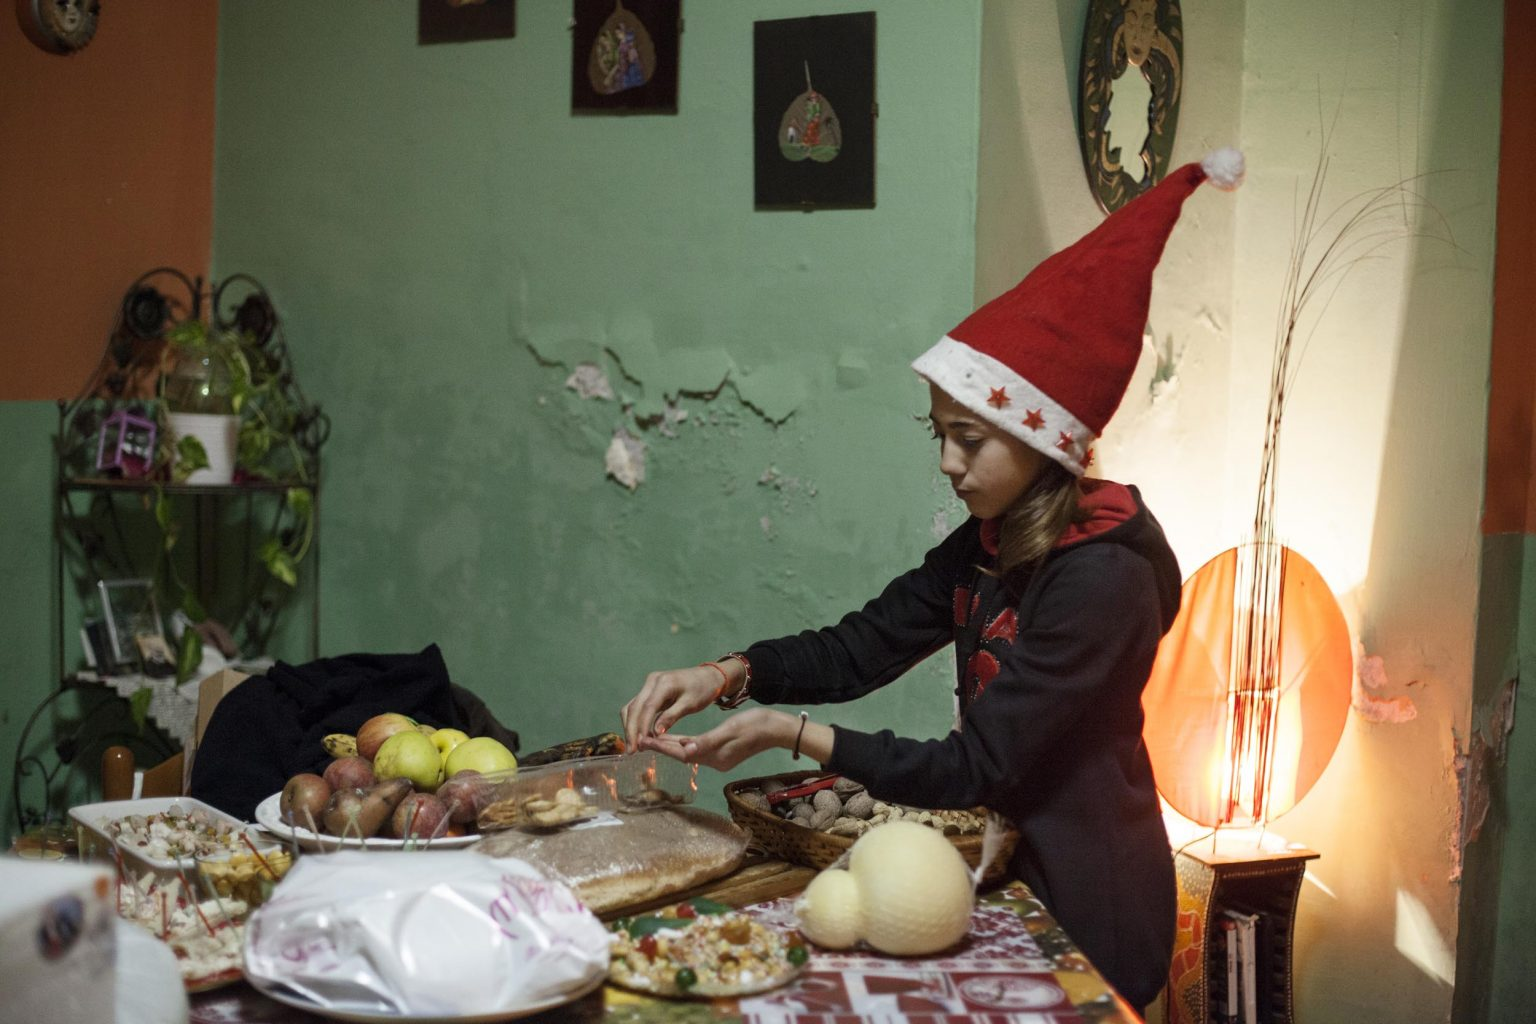 Federica tastes some Christmas sweets. Although Claudia fights everyday to bring food to the table, Christmas' eve is an important day to somebody that as a young girl never spent it with her own family, so she makes extra efforts to make it sumptuous.